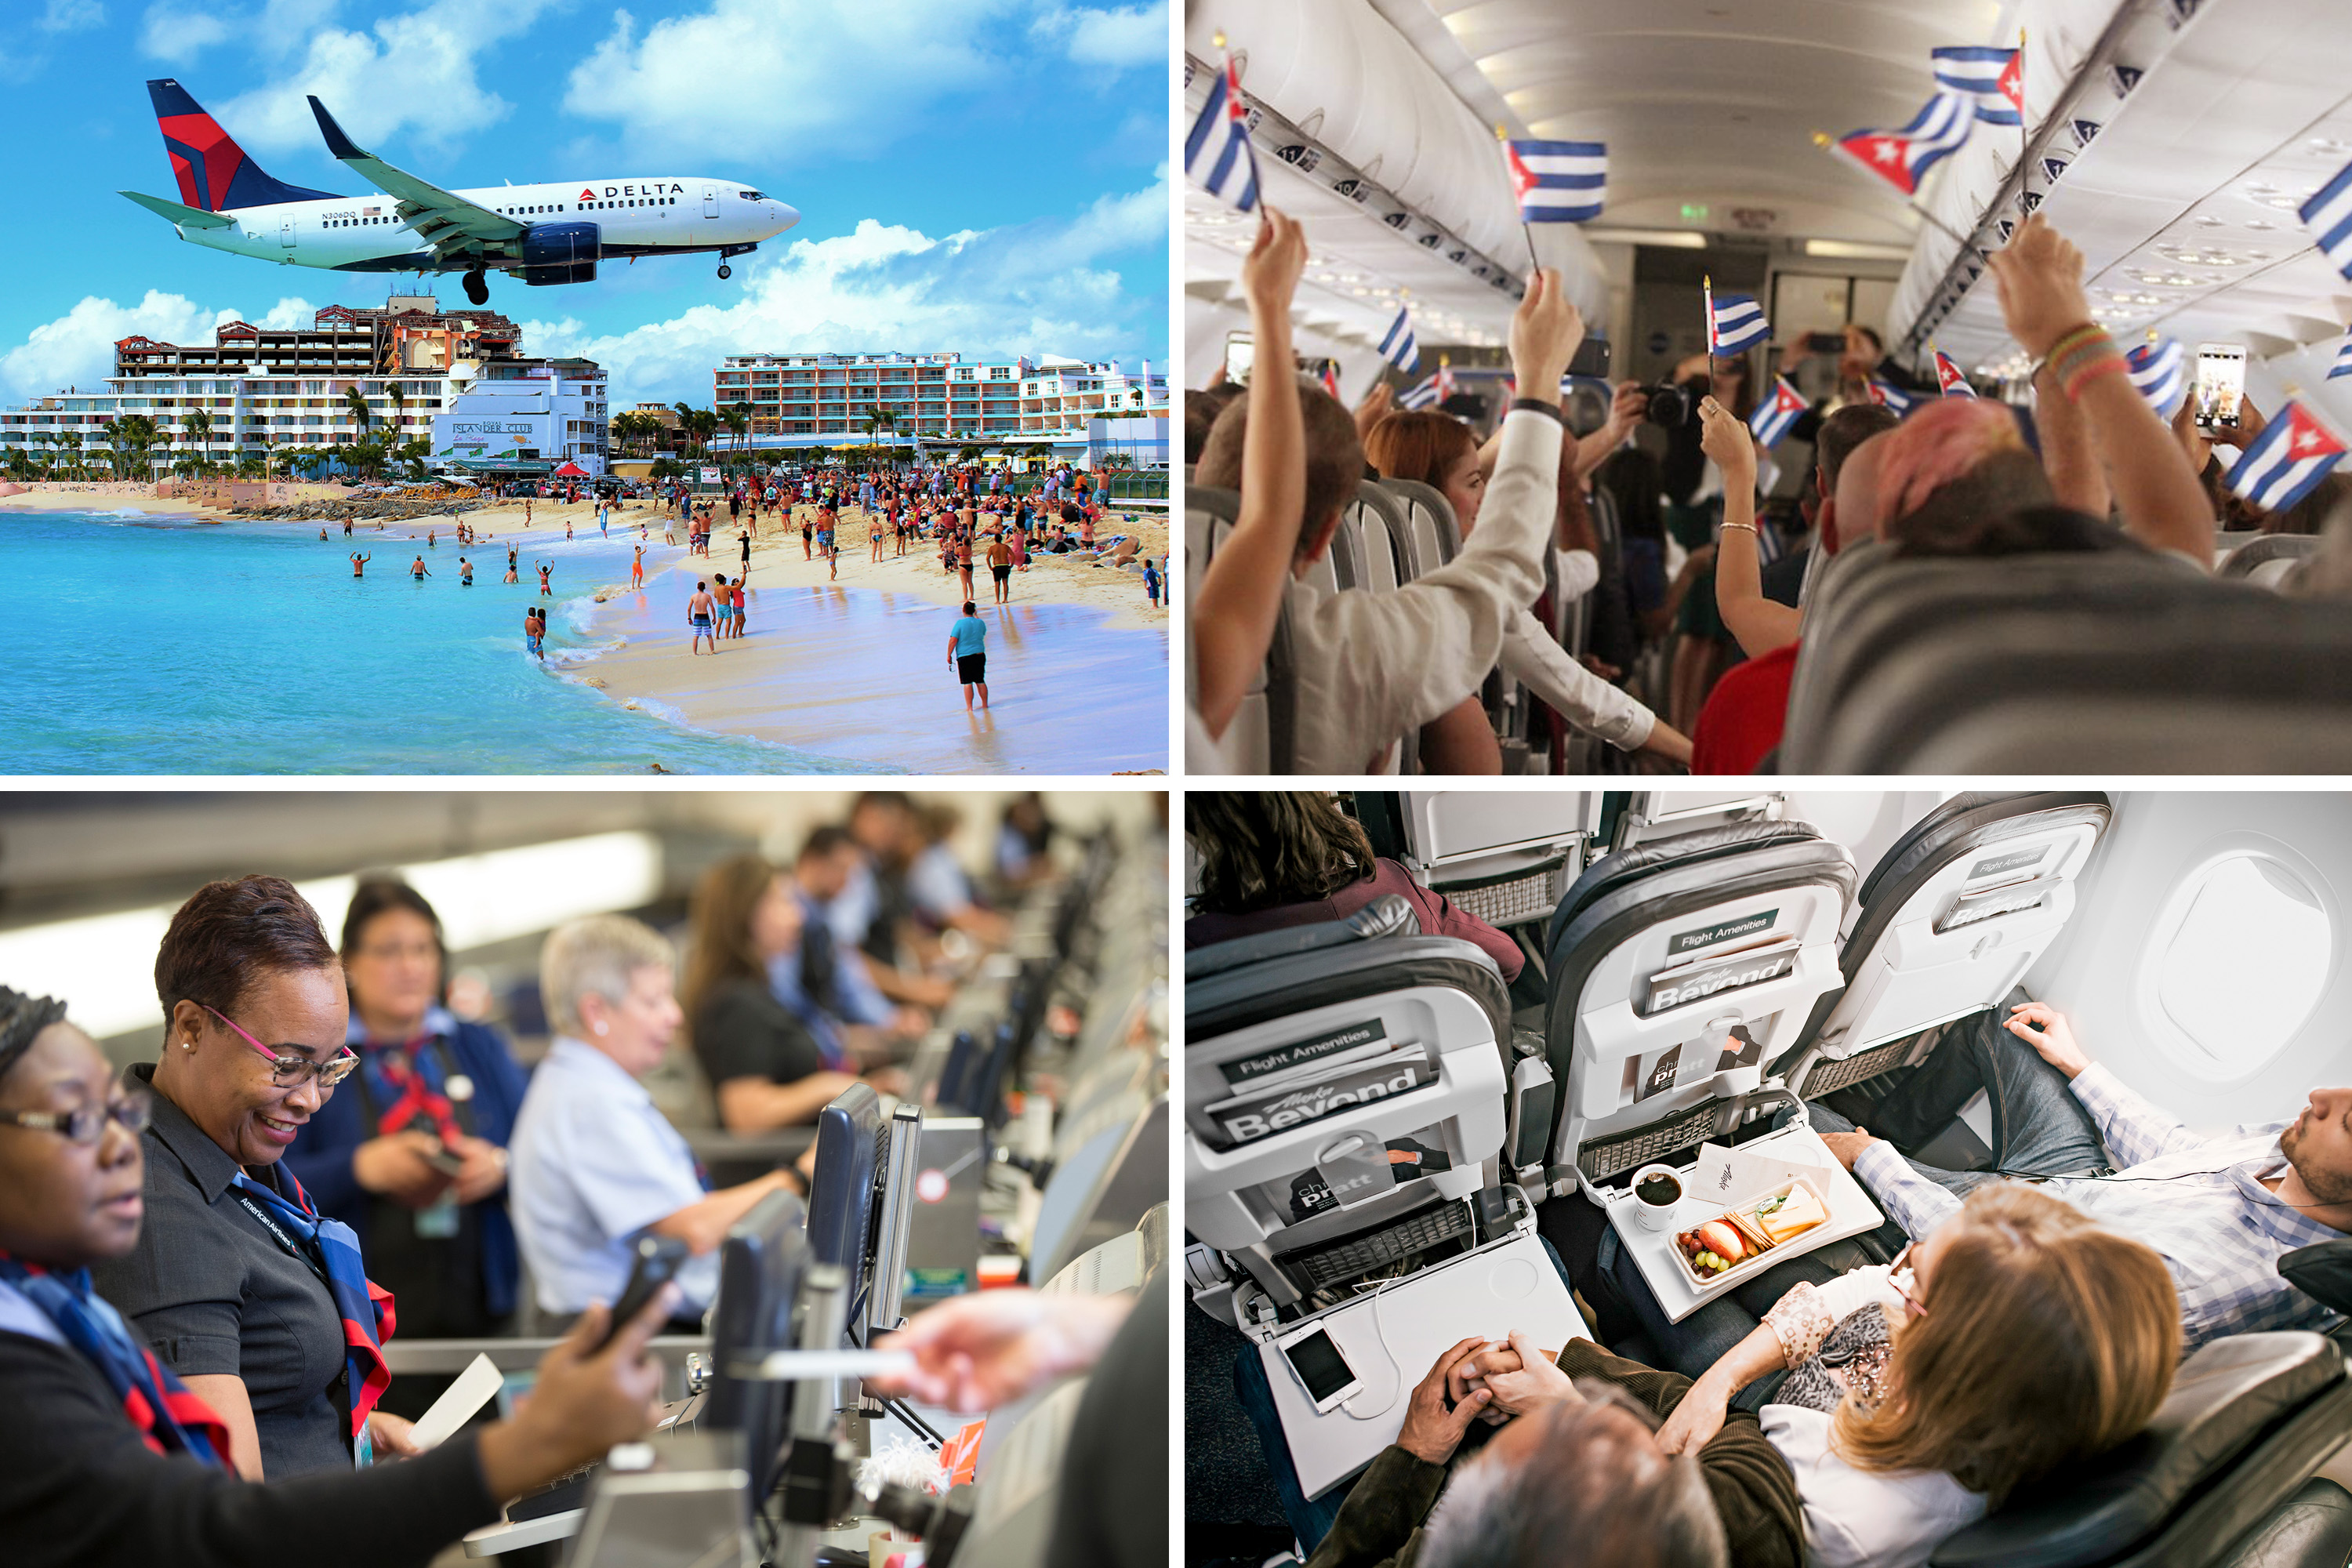 The Absolute Best (and Worst) U.S. Airlines, According to 39 Factors Like Cost, Delays, and Fees